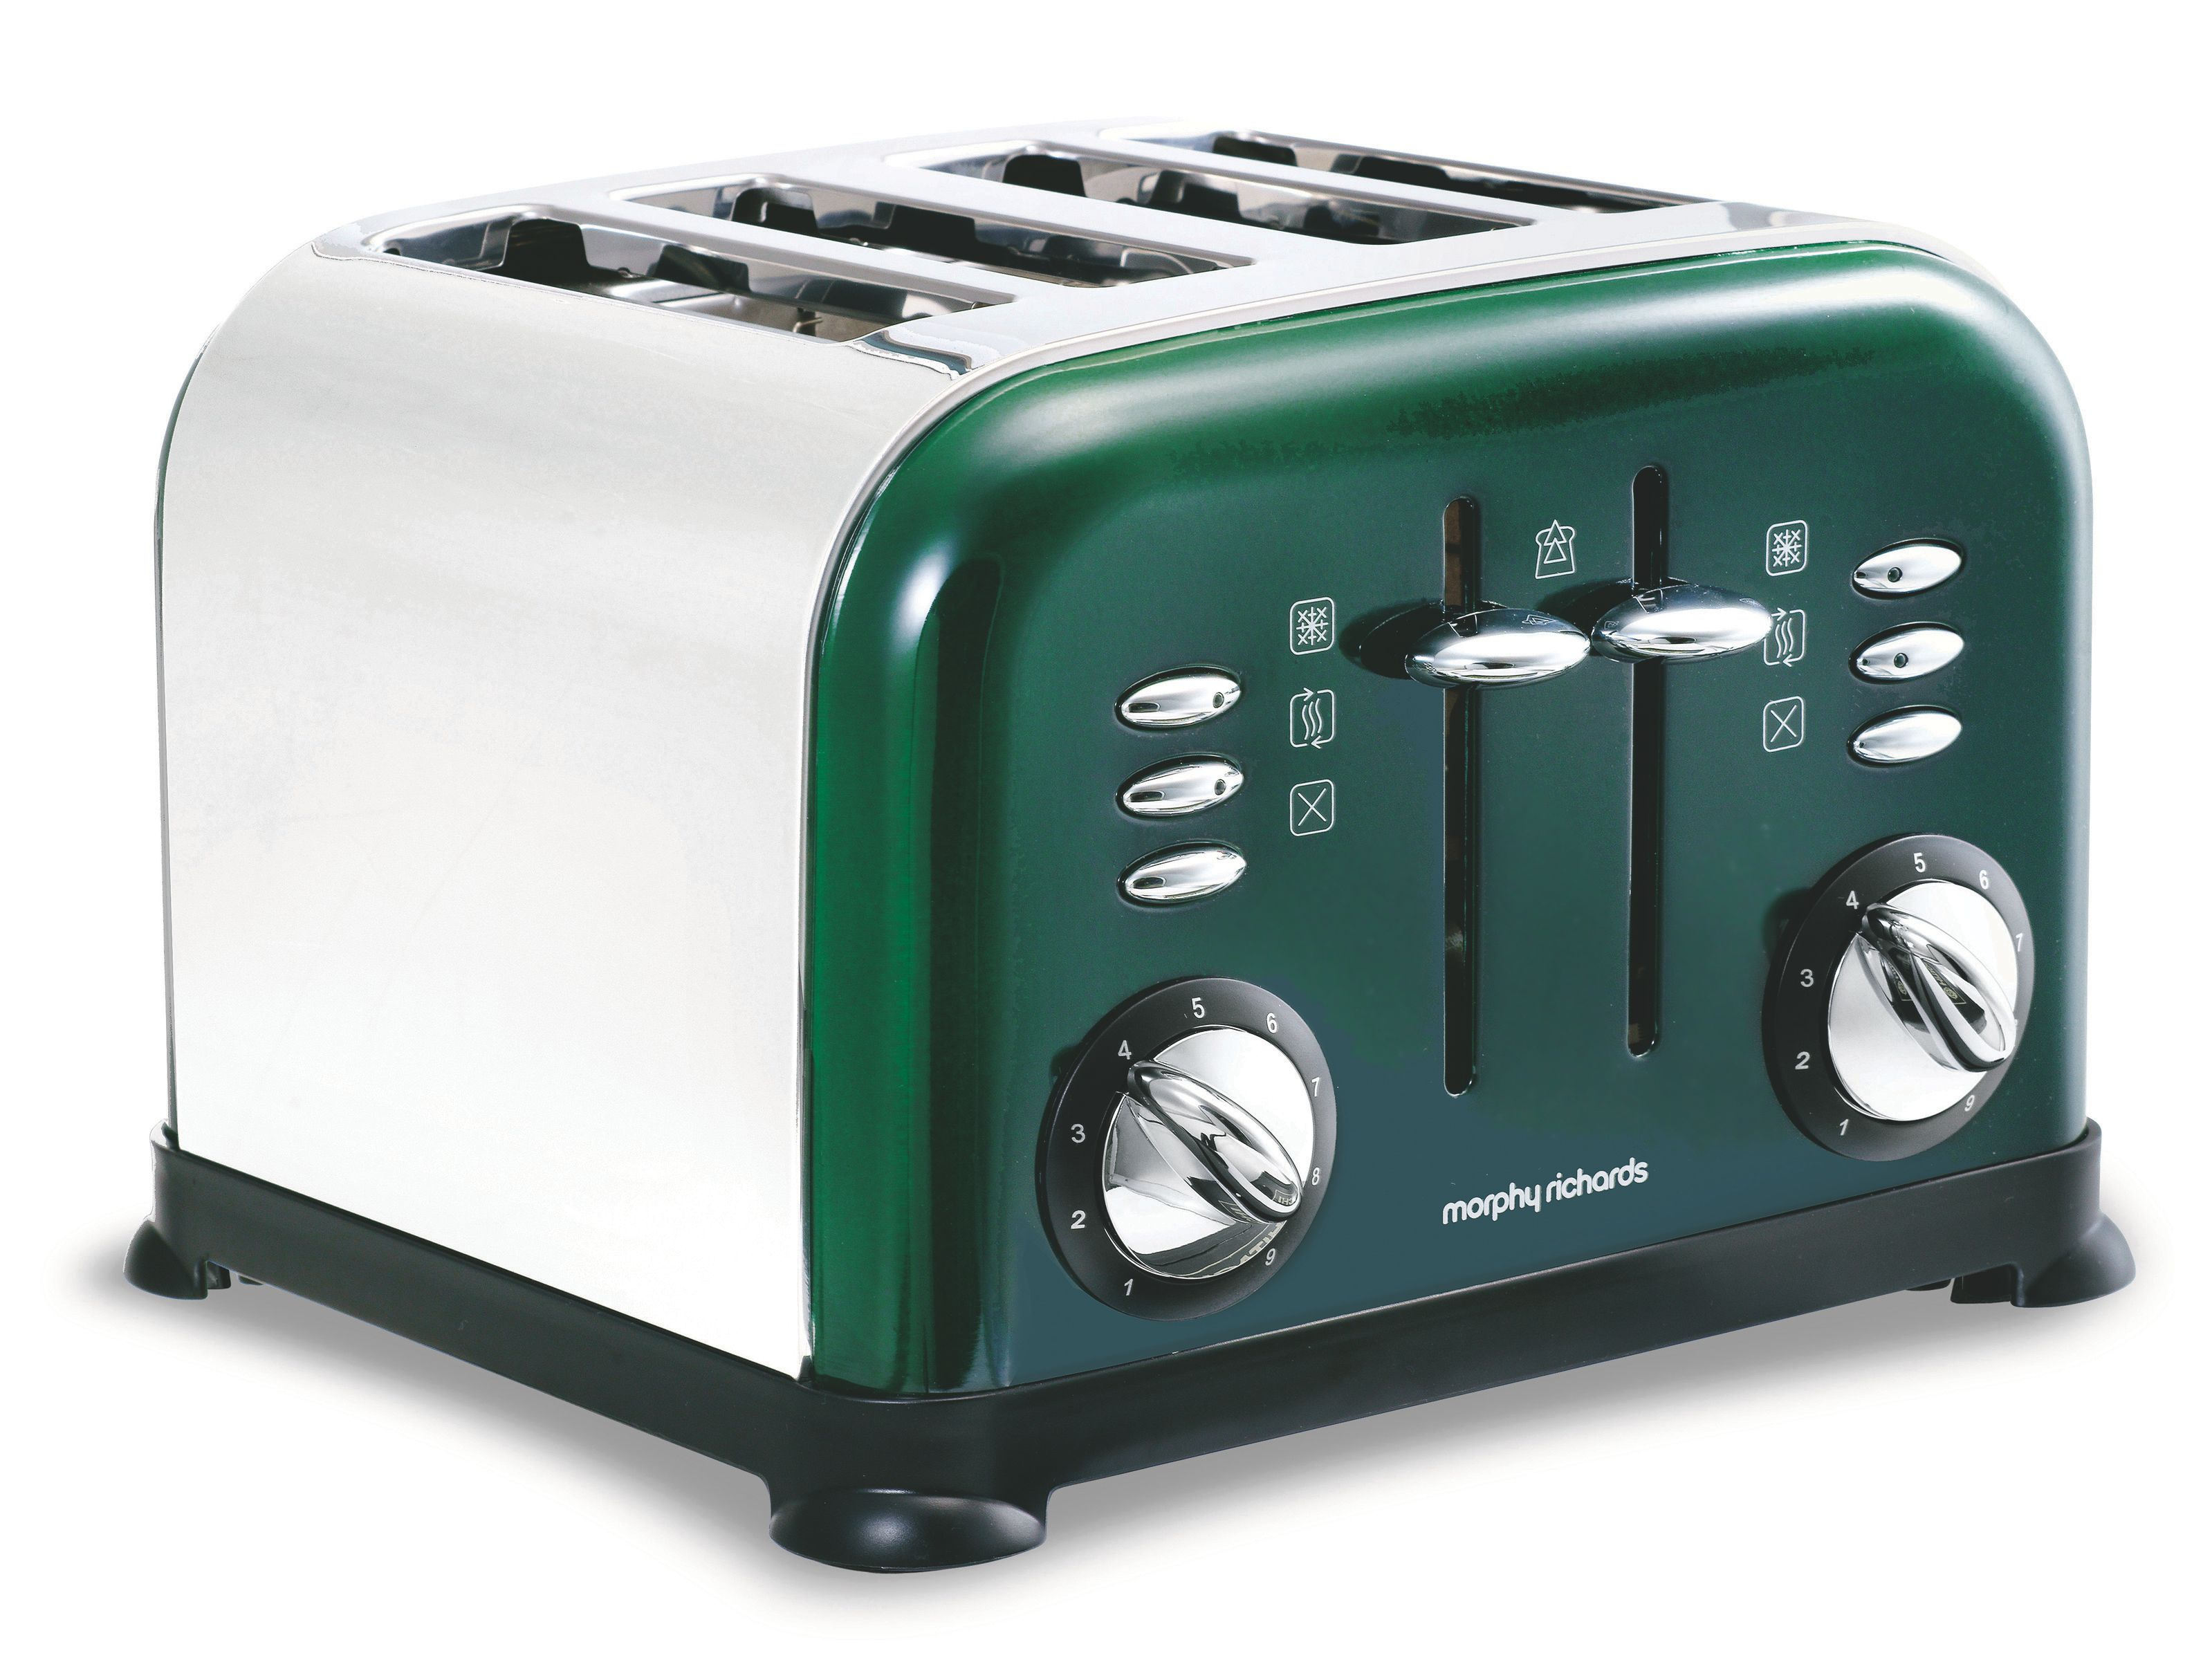 Morphy Richards 44731 green accents 4 slice toaster